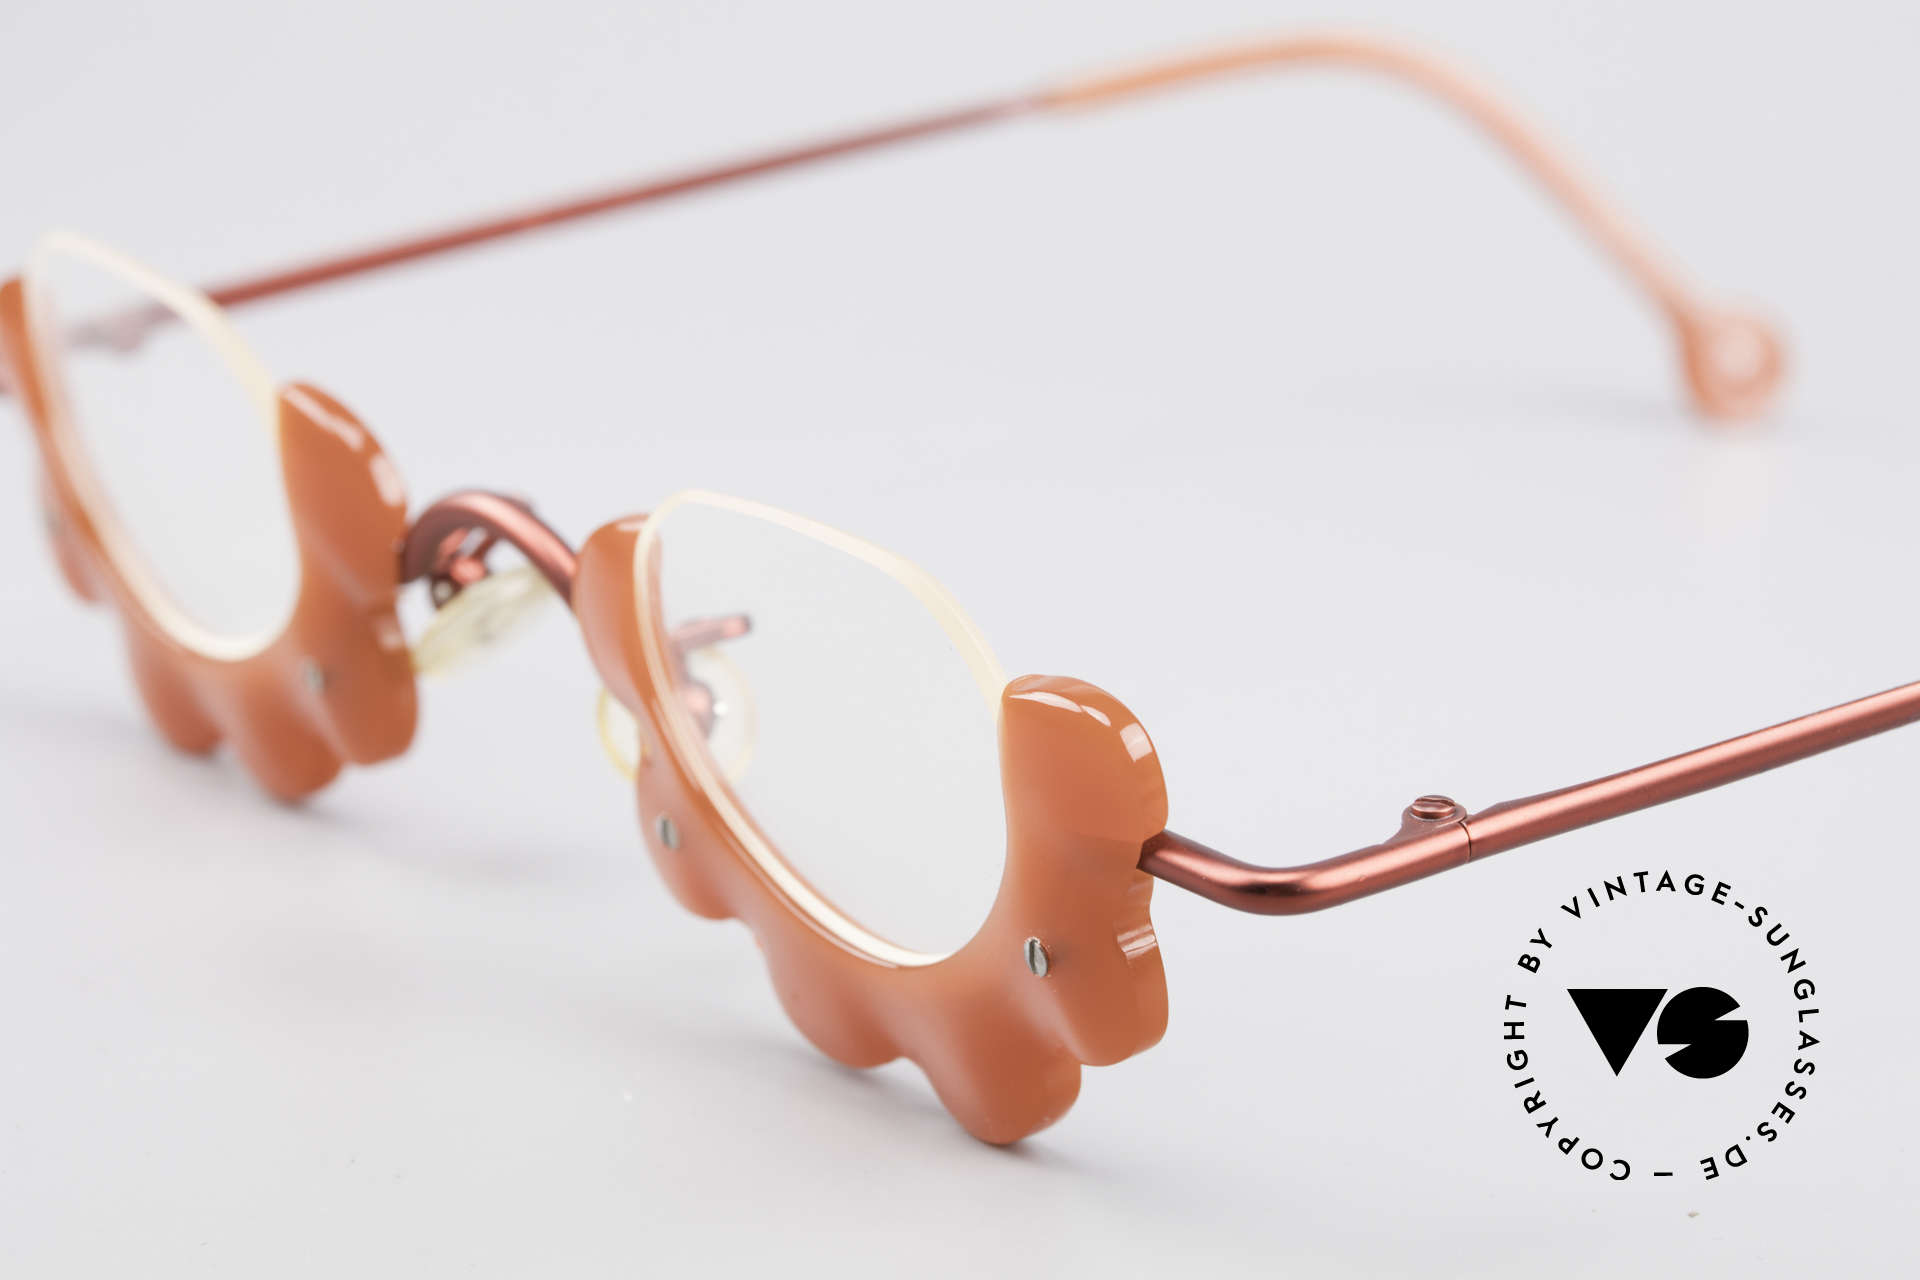 L.A. Eyeworks BUMBLE 487 Enchanting Ladies Eyeglasses, thus, this lovely model was born in 1998 in Los Angeles, Made for Women